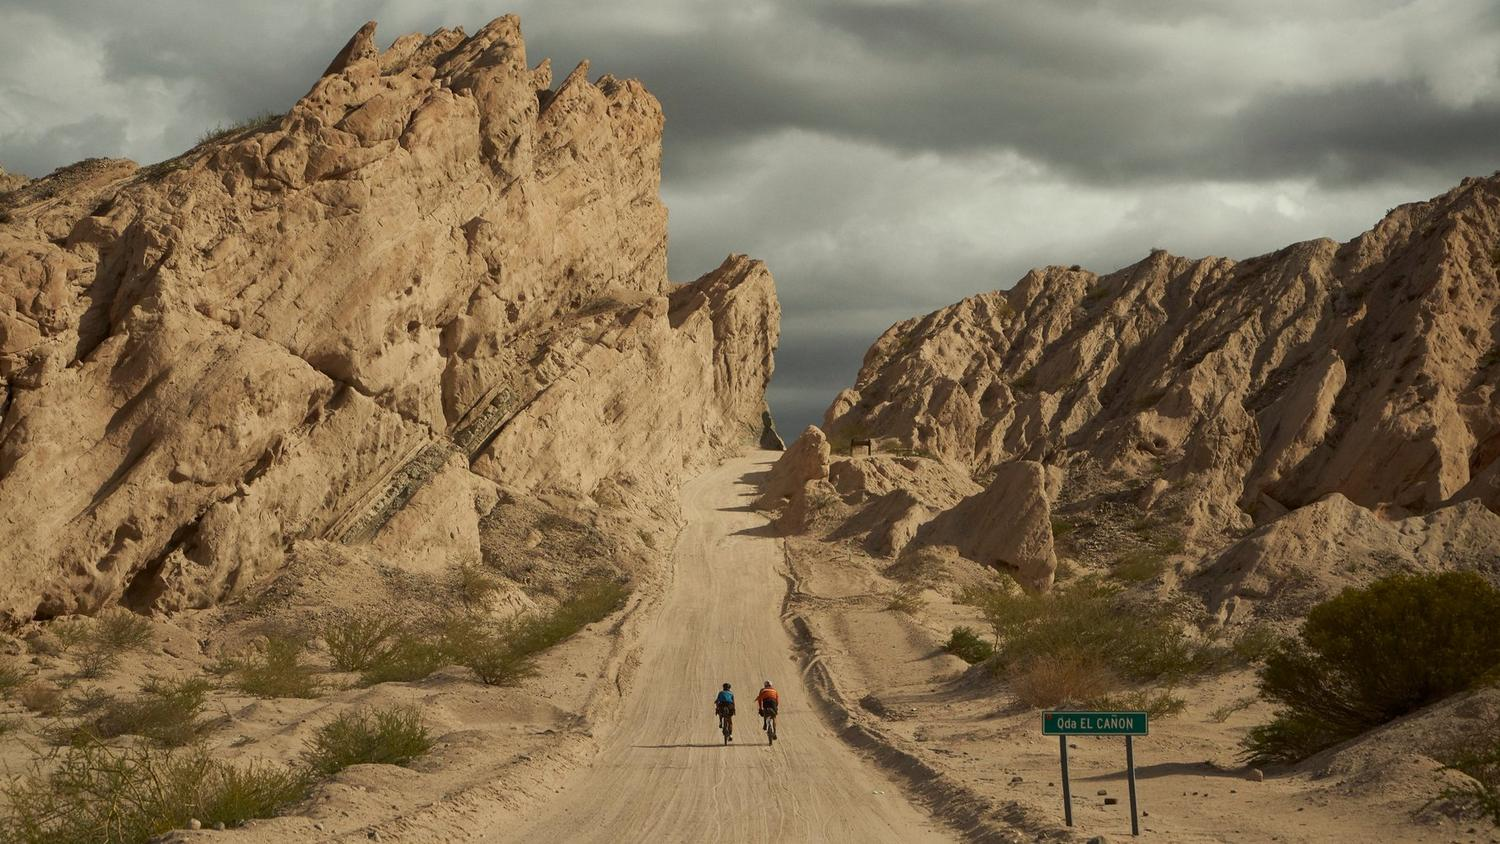 In January, Rapha photographer and filmmaker George Marshall travelled to northern Argentina with long-distance riders Jesse Carlsson, Sarah Hammond and Neil Phillips.